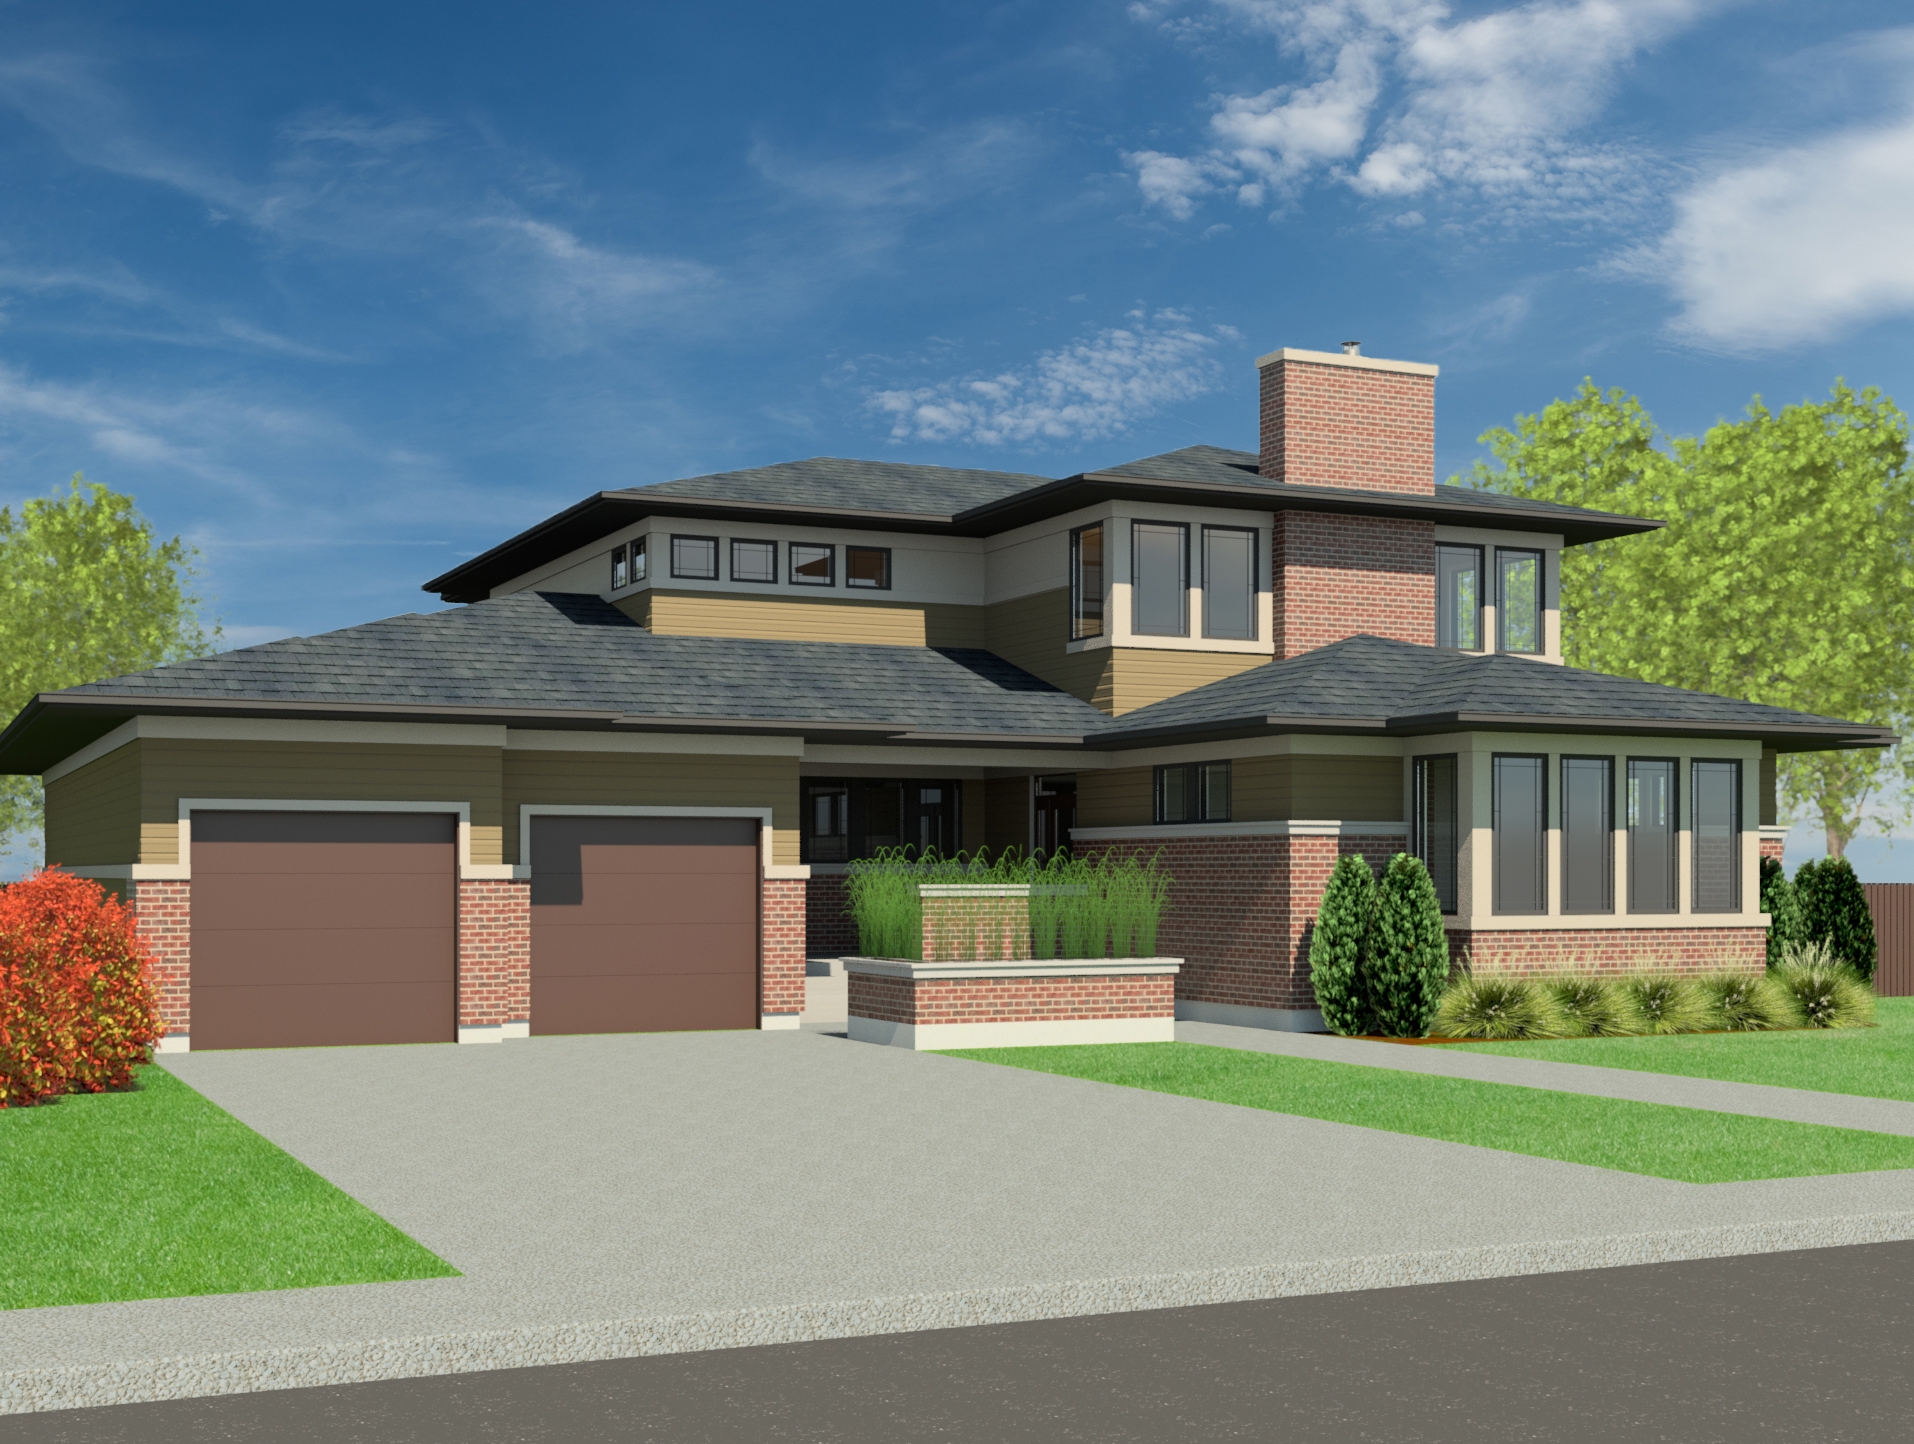 Prairie lowry 3512 robinson plans for Home palns